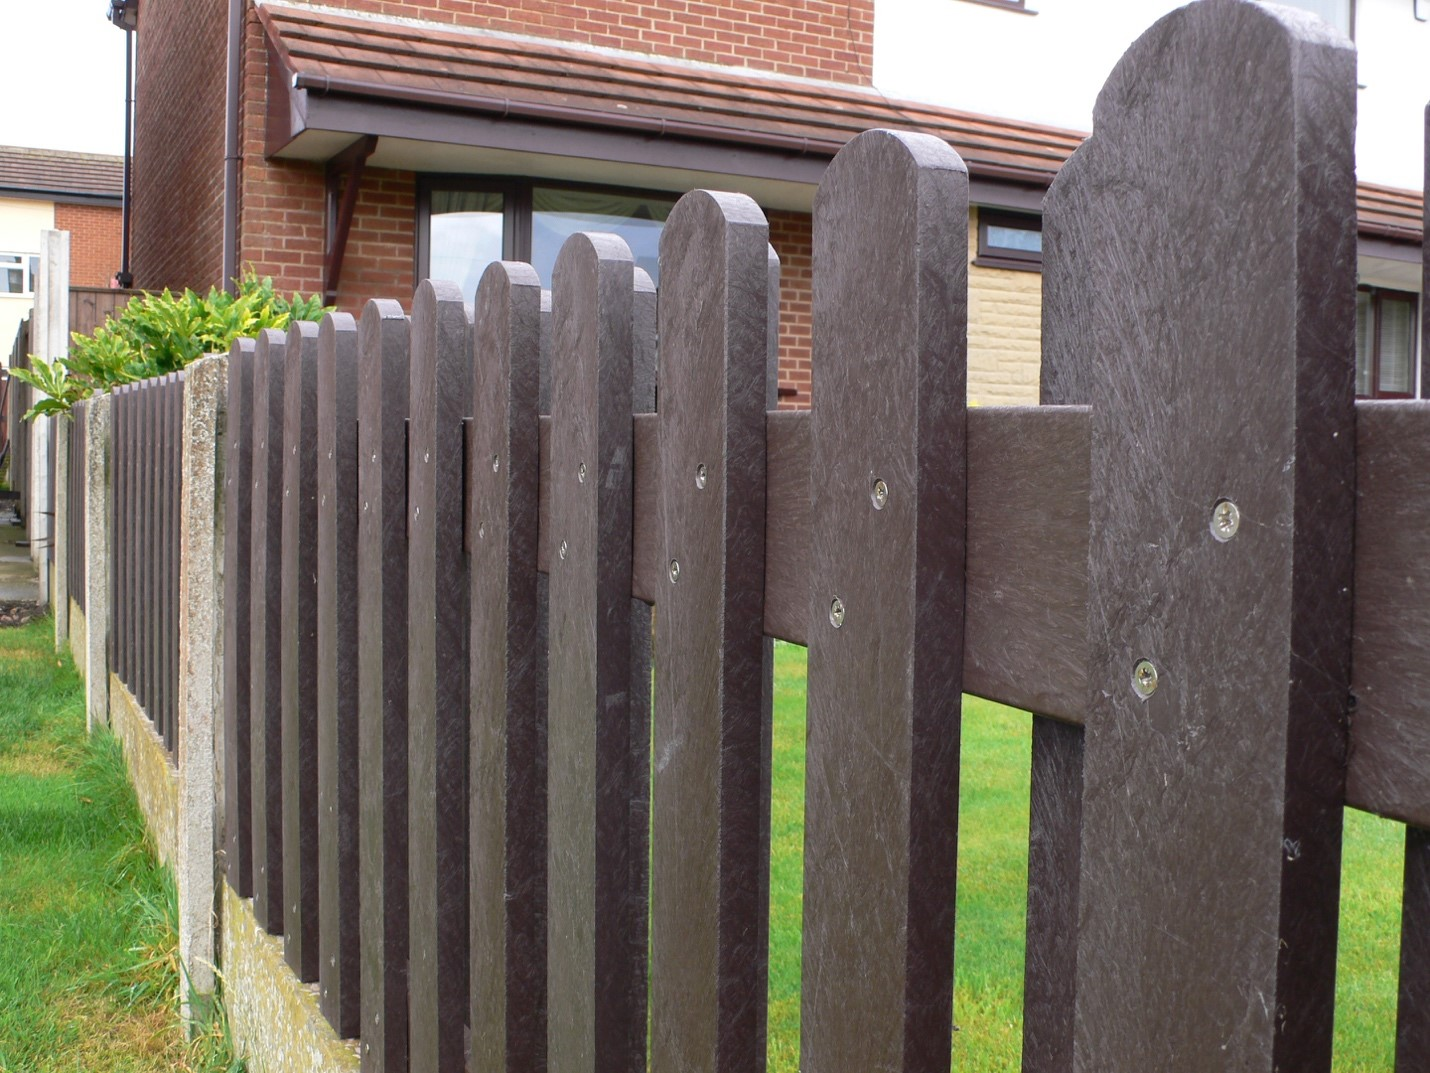 Residential fencing eliminates ownership maintenance entirely!